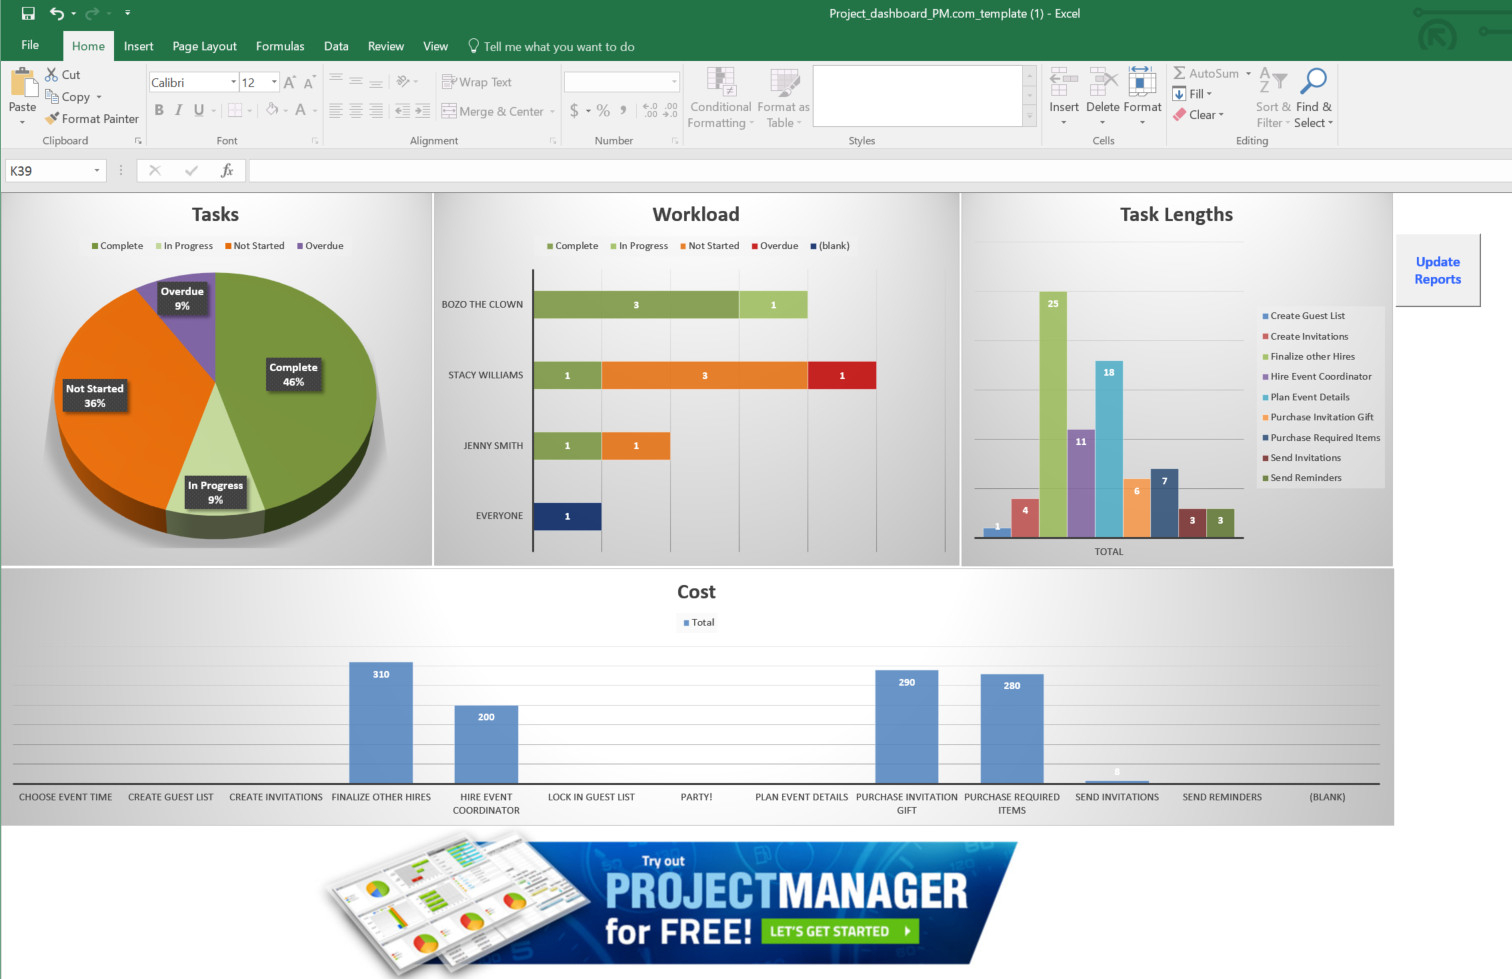 Guide To Excel Project Management - Projectmanager With Excel Project Management Dashboard Template Free